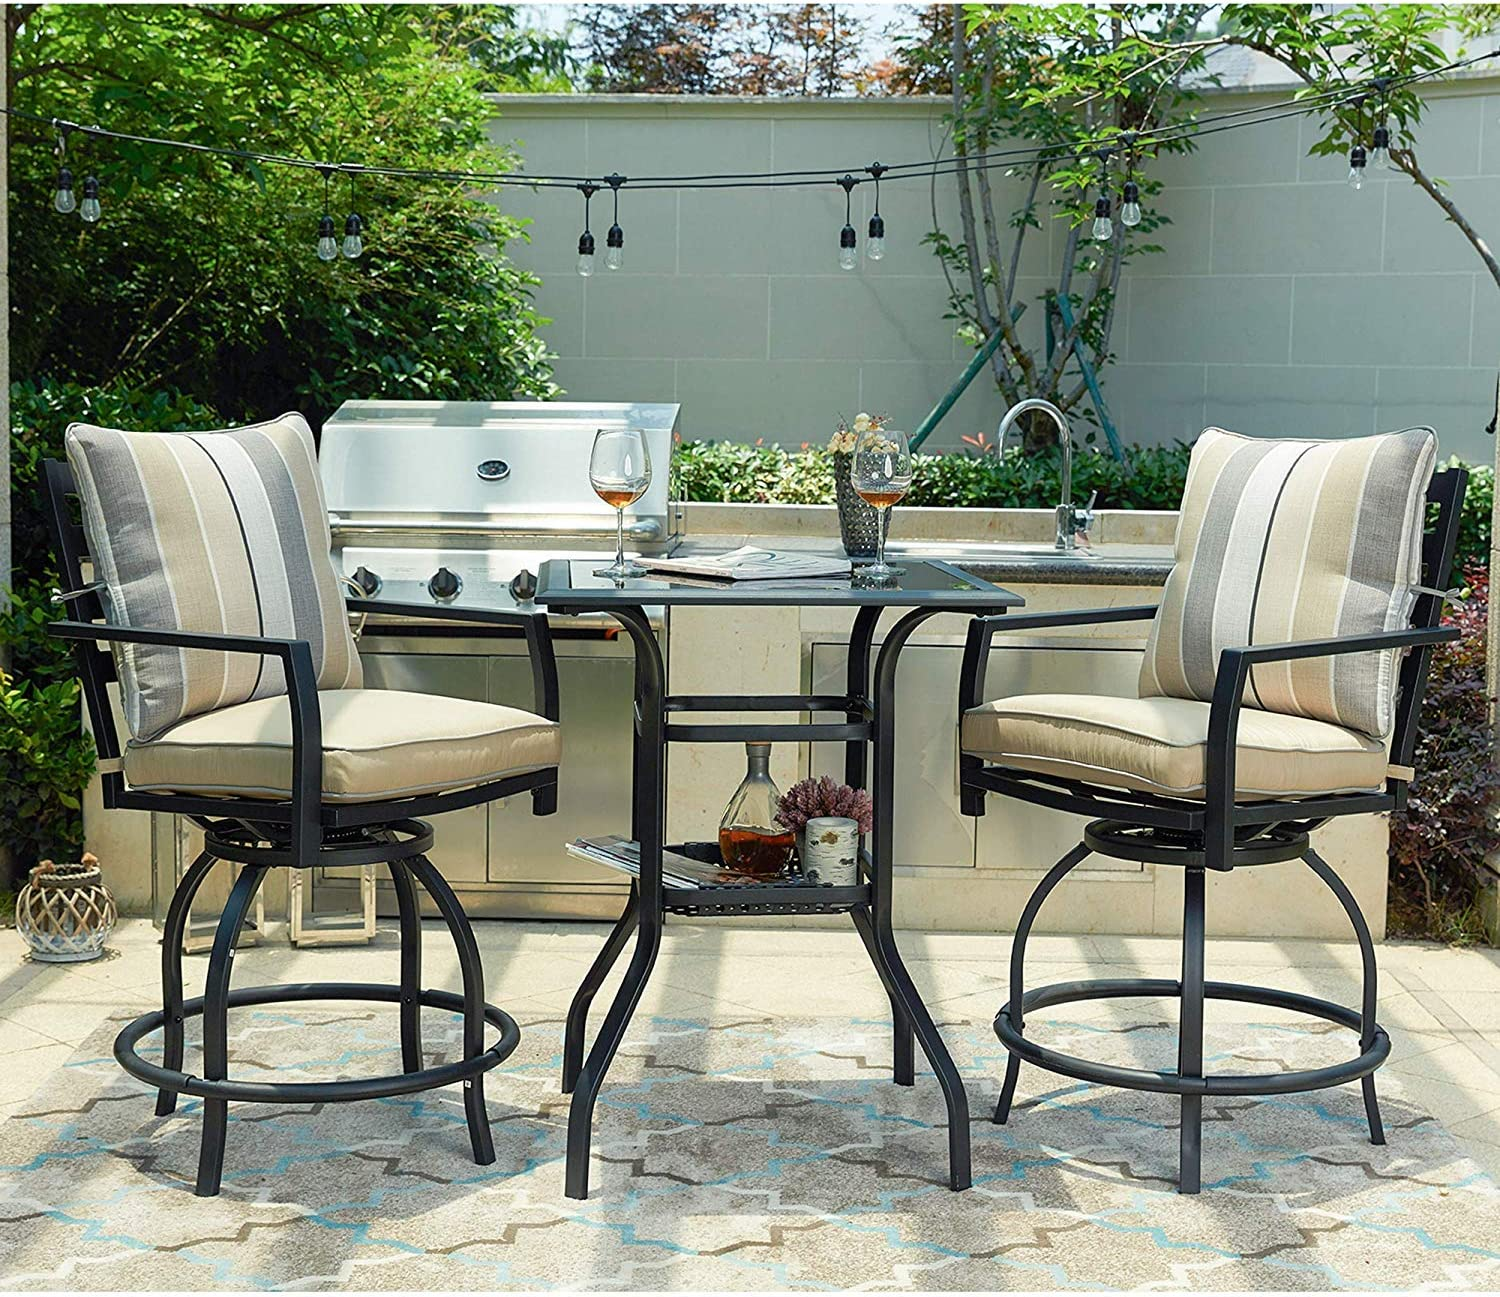 LOKATSE HOME 3 Piece Bistro Set Outdoor Bar Height Swivel with 2 Patio Chairs and 1 Glass Top Table, White Cushions